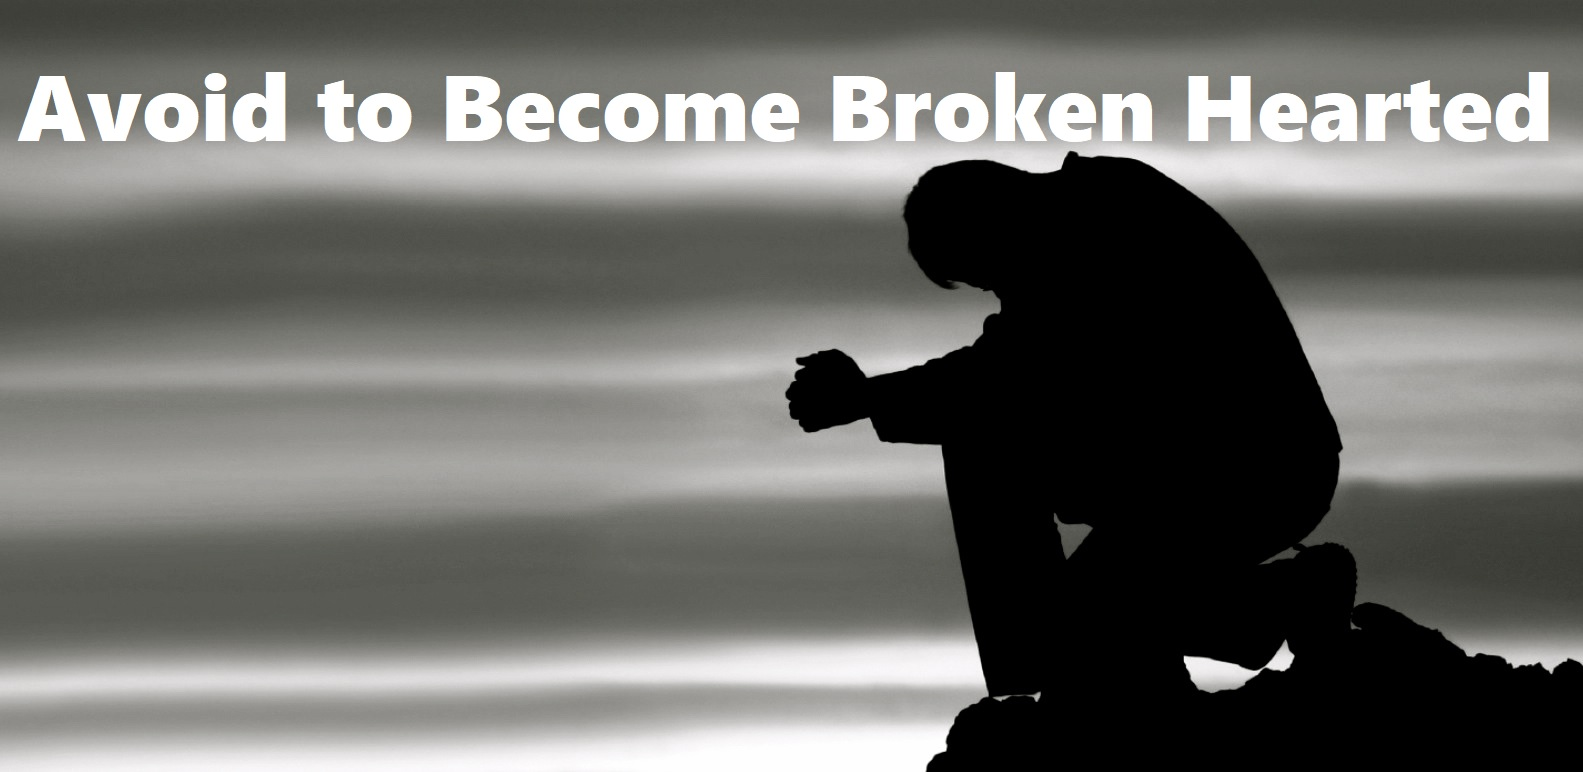 Avoid to Become Broken Hearted